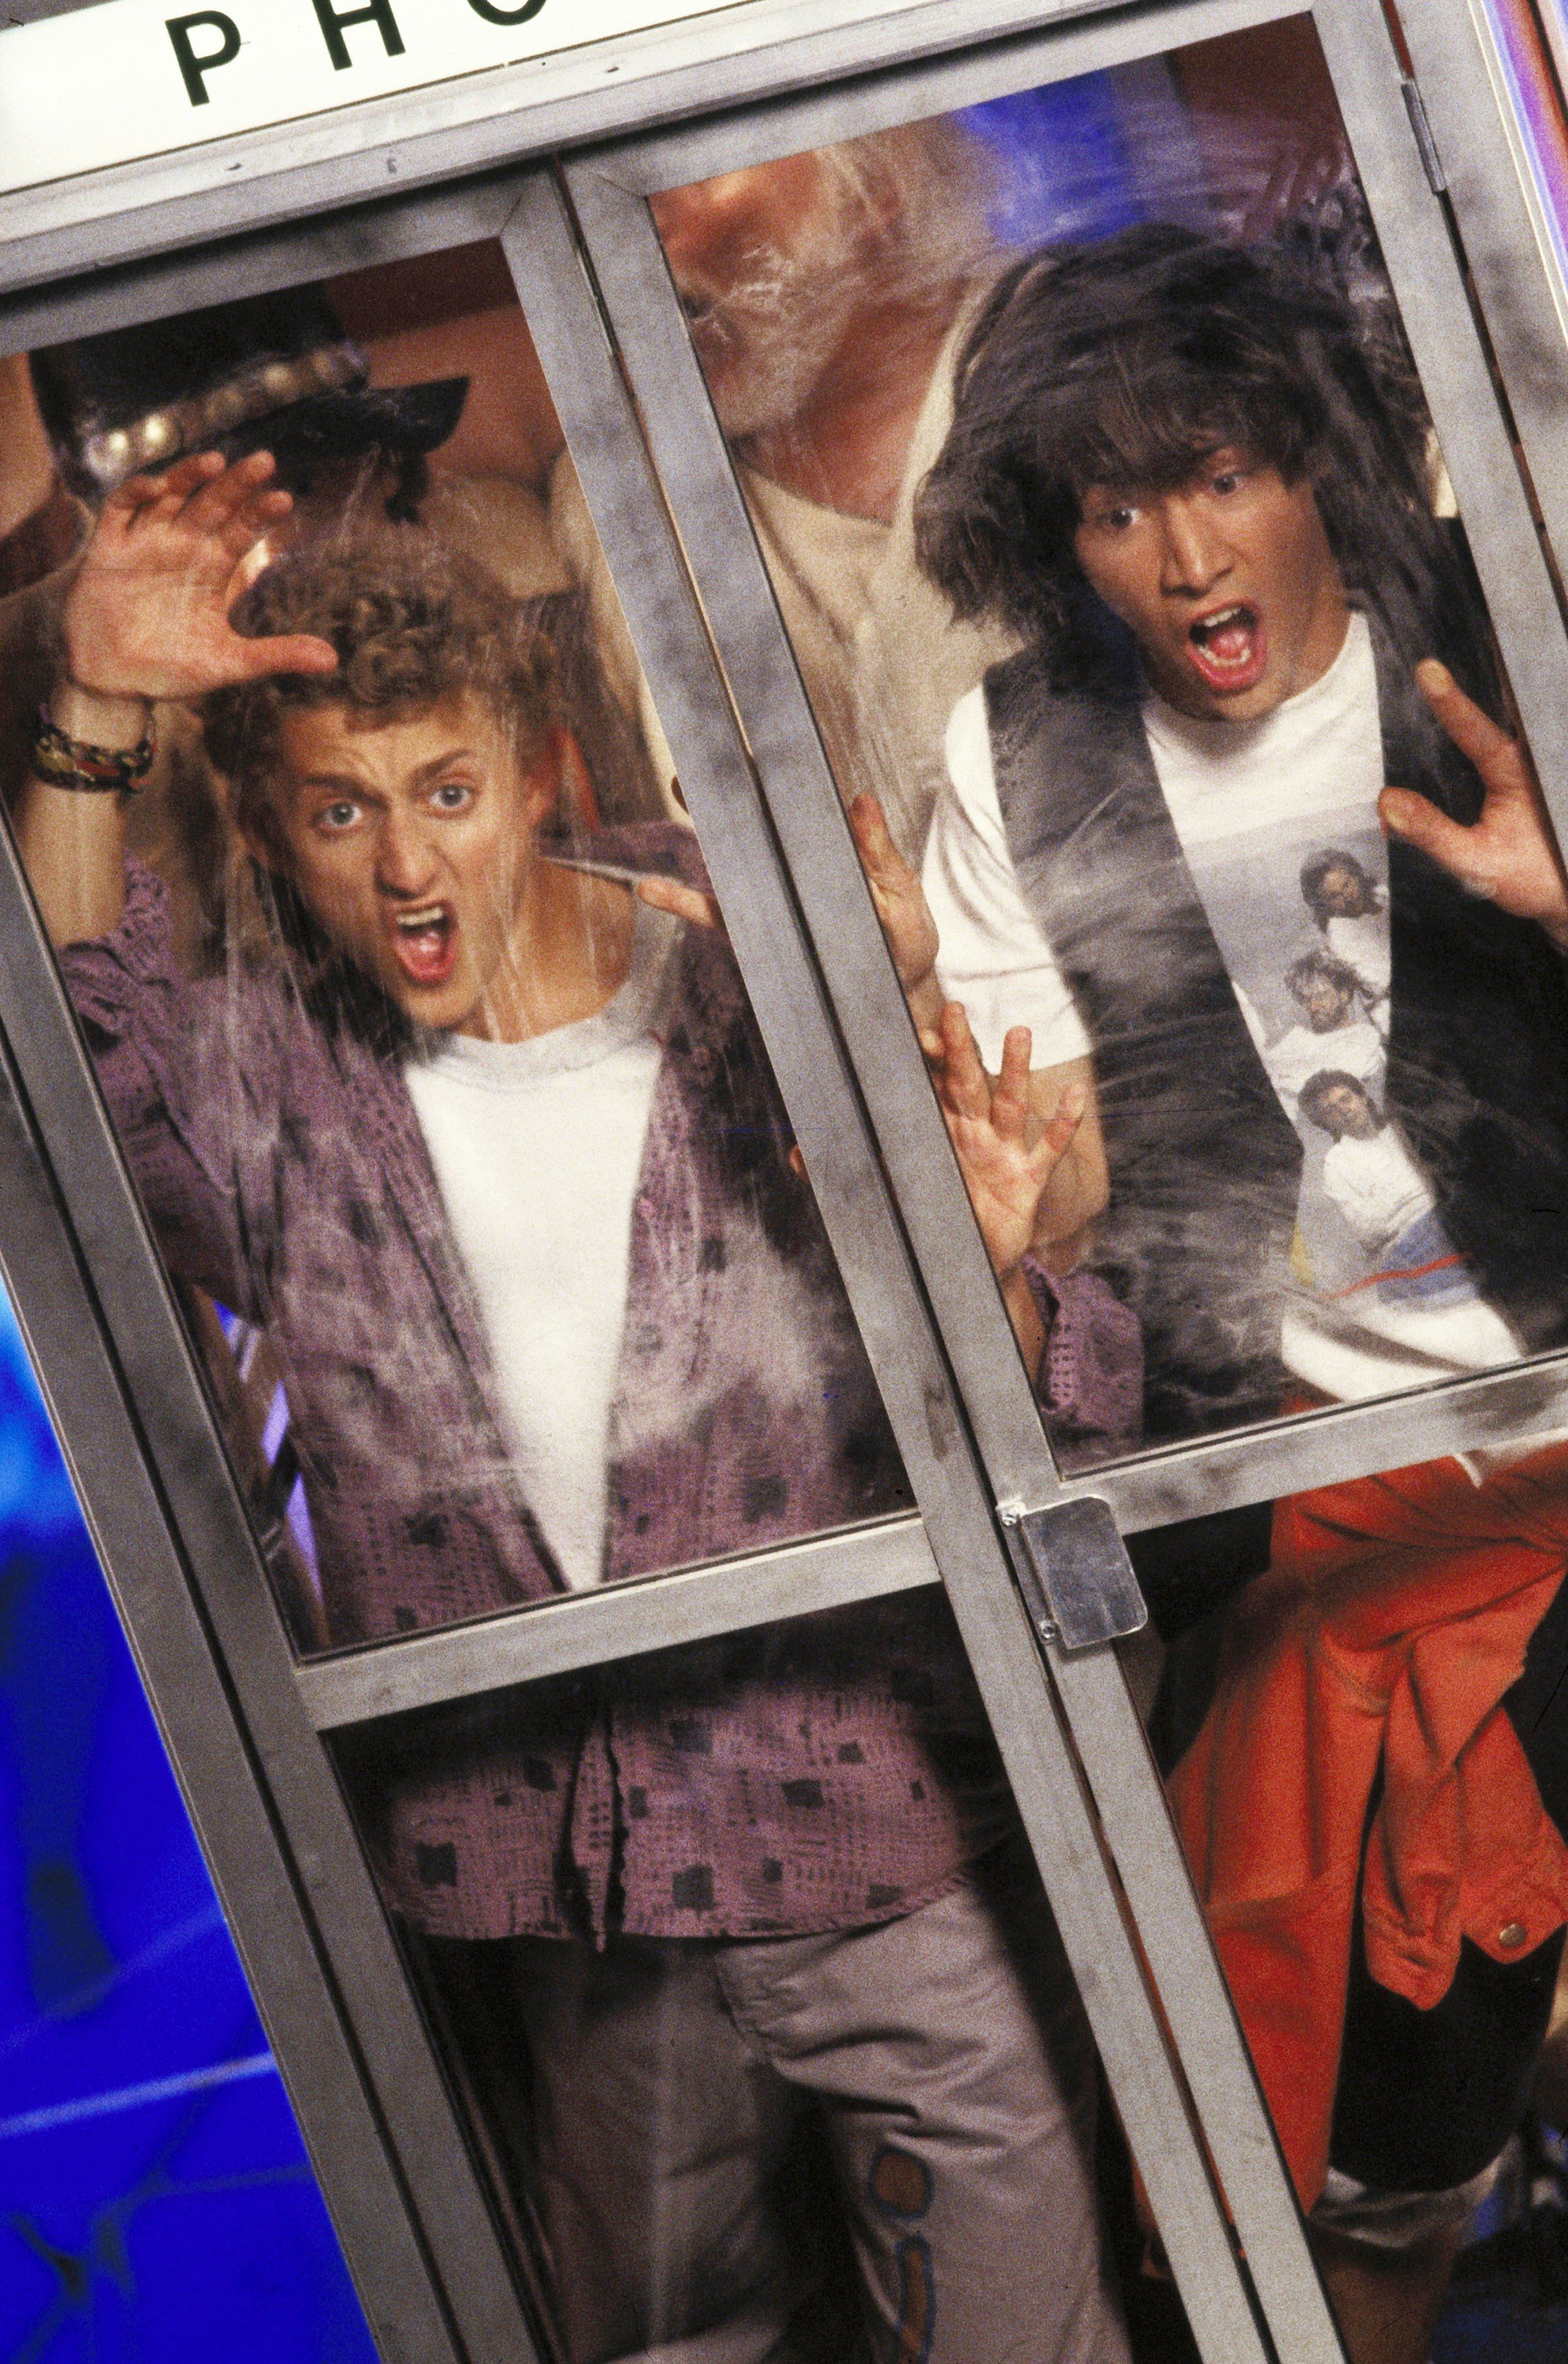 'Bill And Ted's Excellent Adventure' came out in 1989